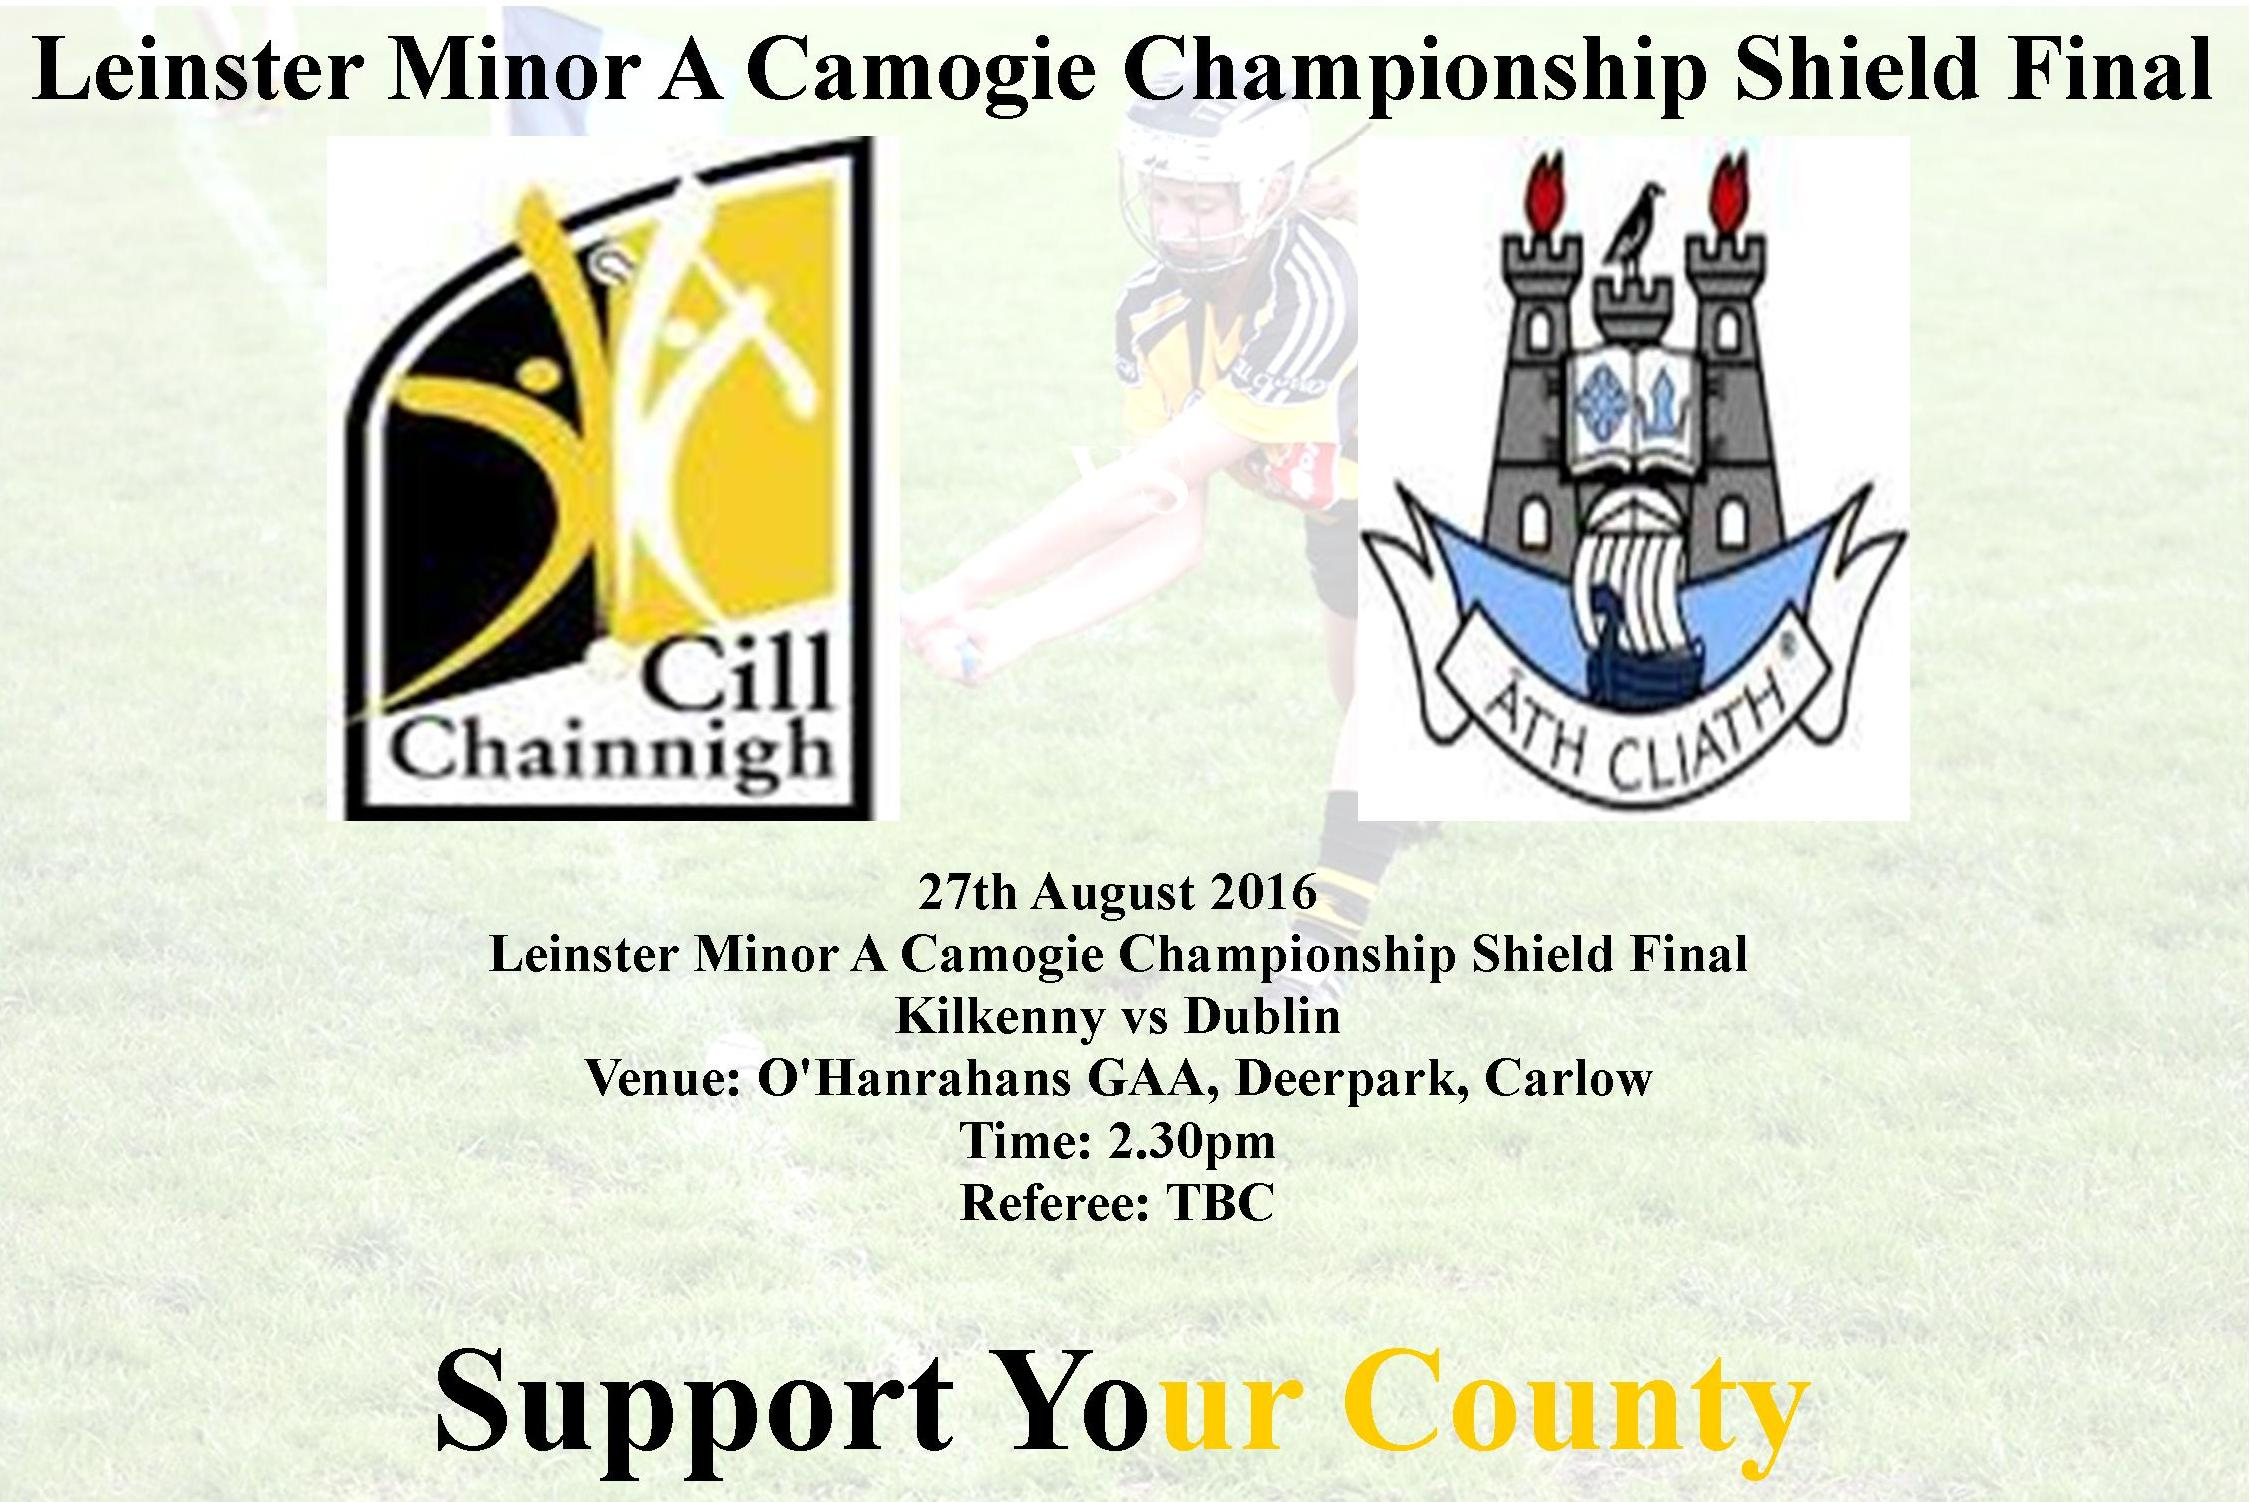 Leinster Minor A Camogie Championship Shield Final Kilkenny vs Dublin